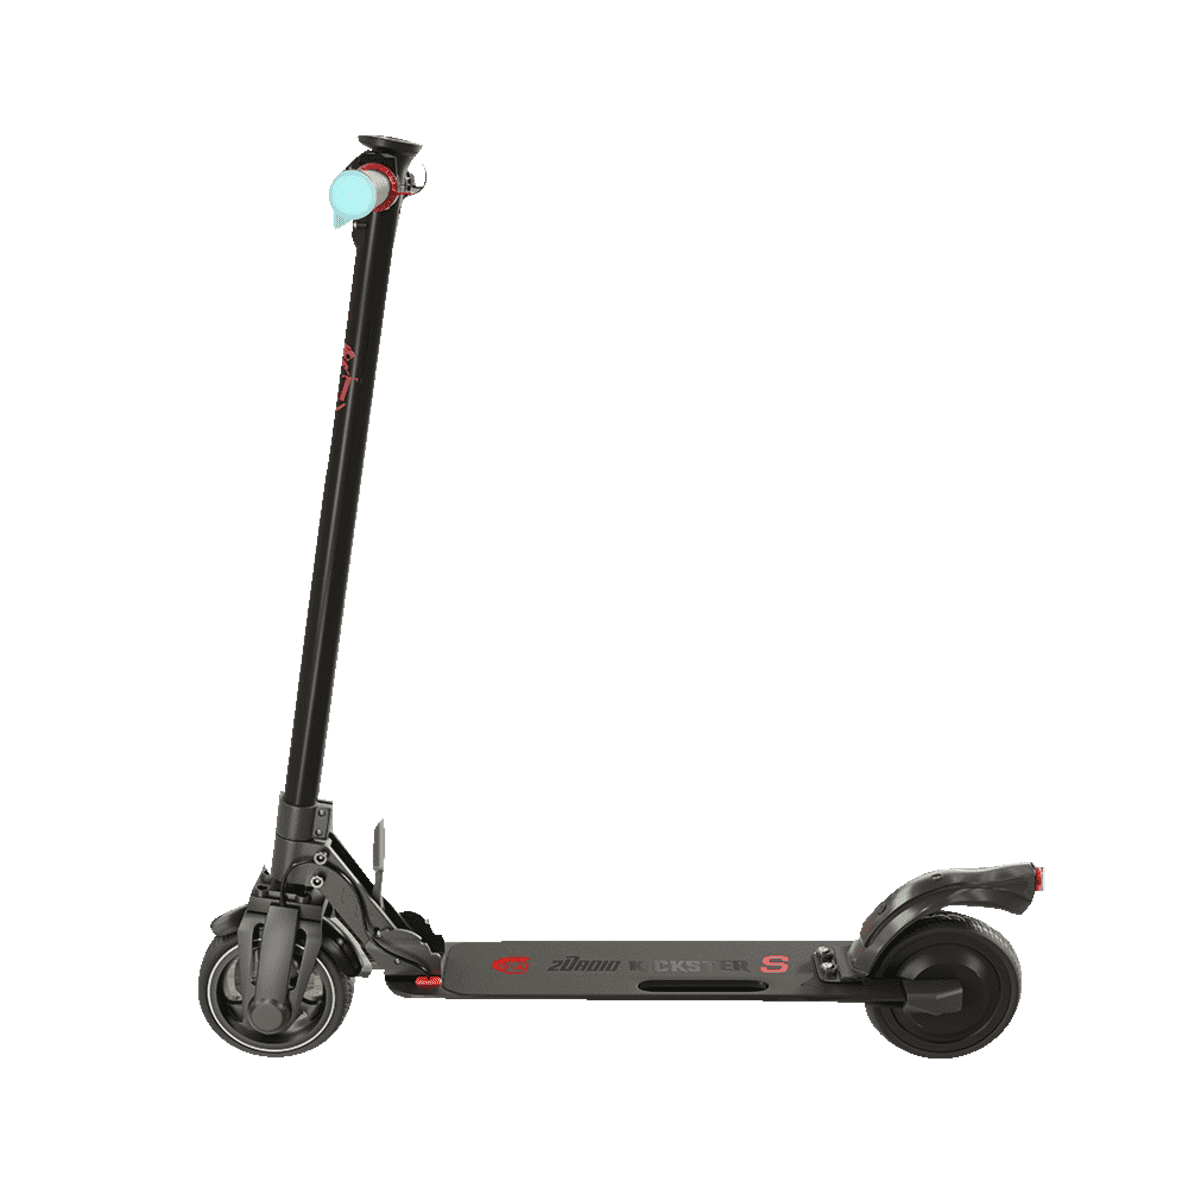 CAT 2Droid Kickster S günstiger E Scooter